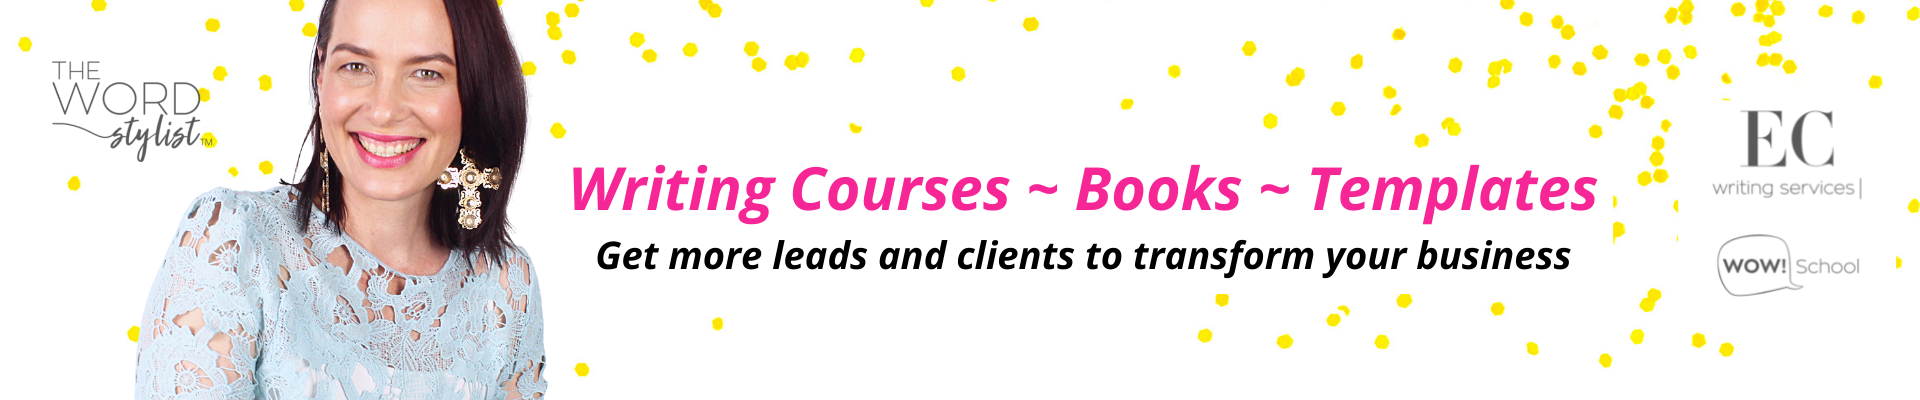 EC Writing Services - Making content writing easy for busy business owners to get more clients